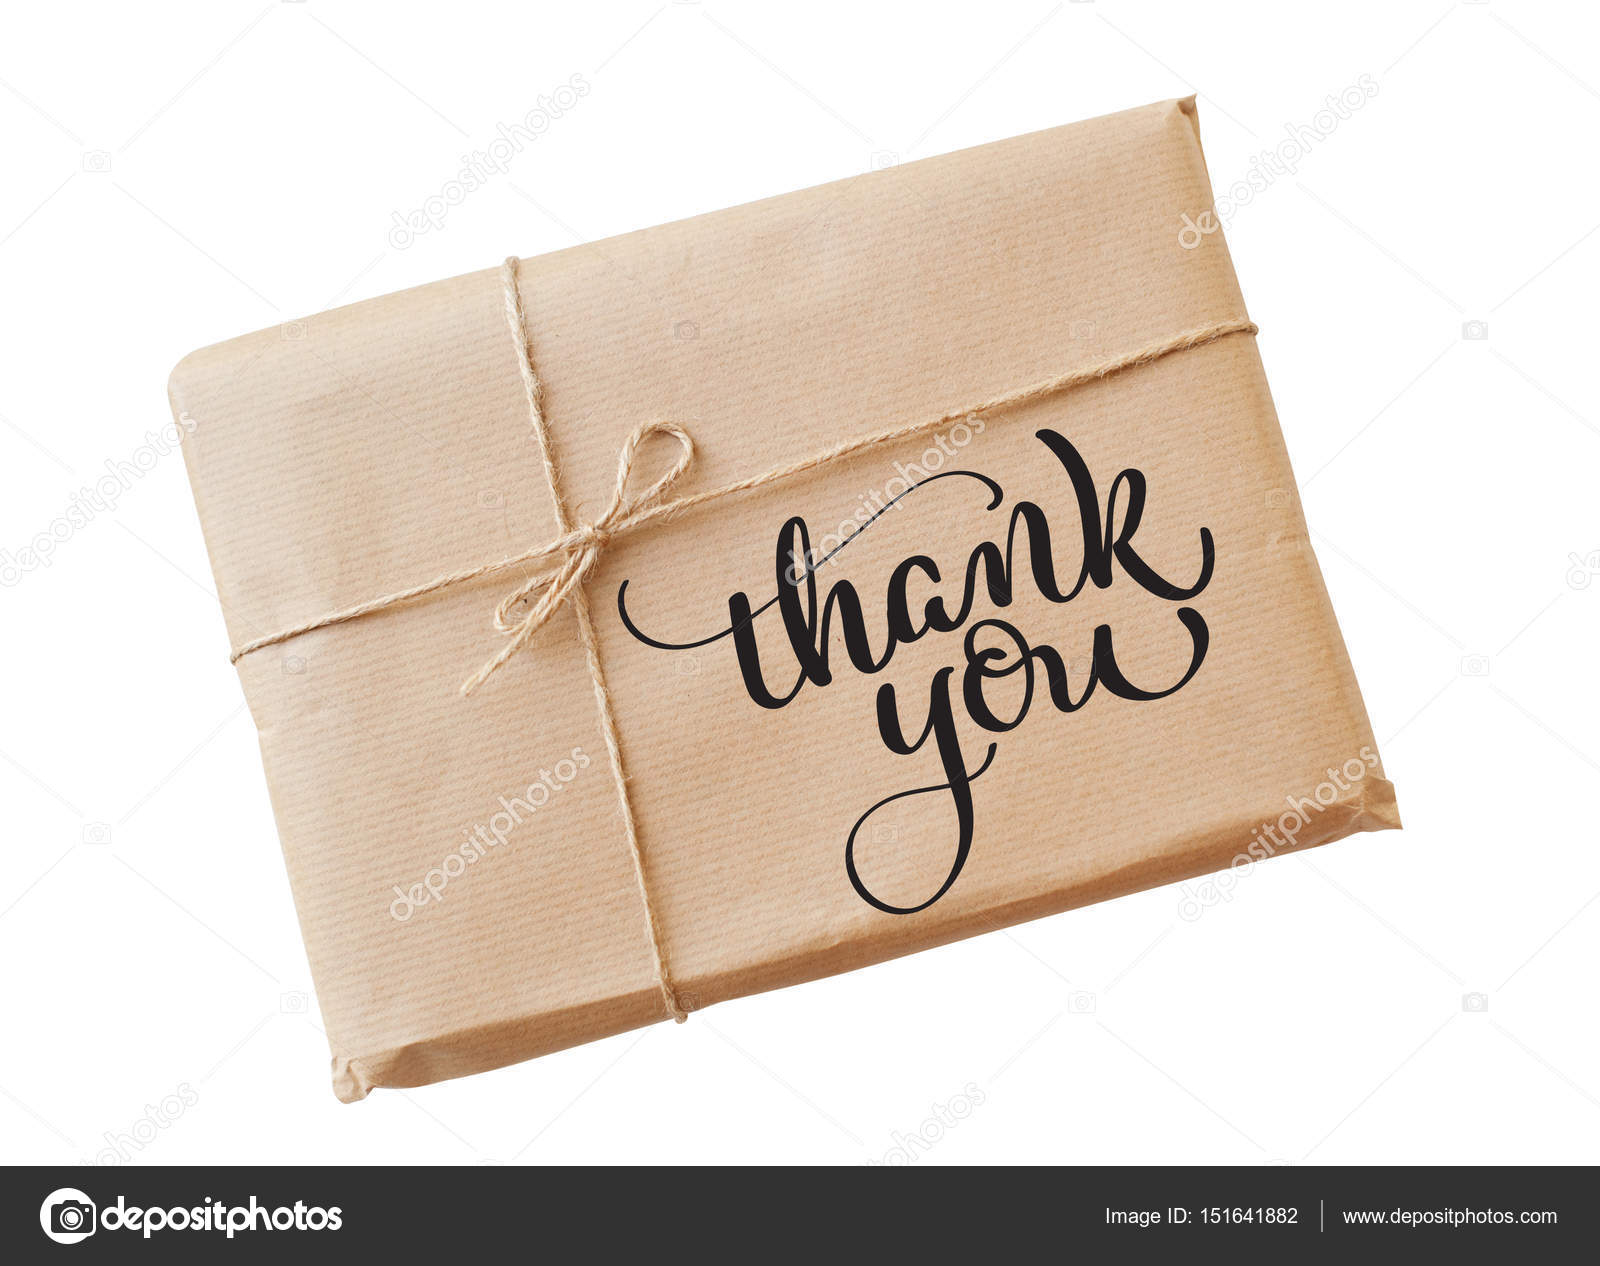 envelope kraft paper tied with string on a white background and text